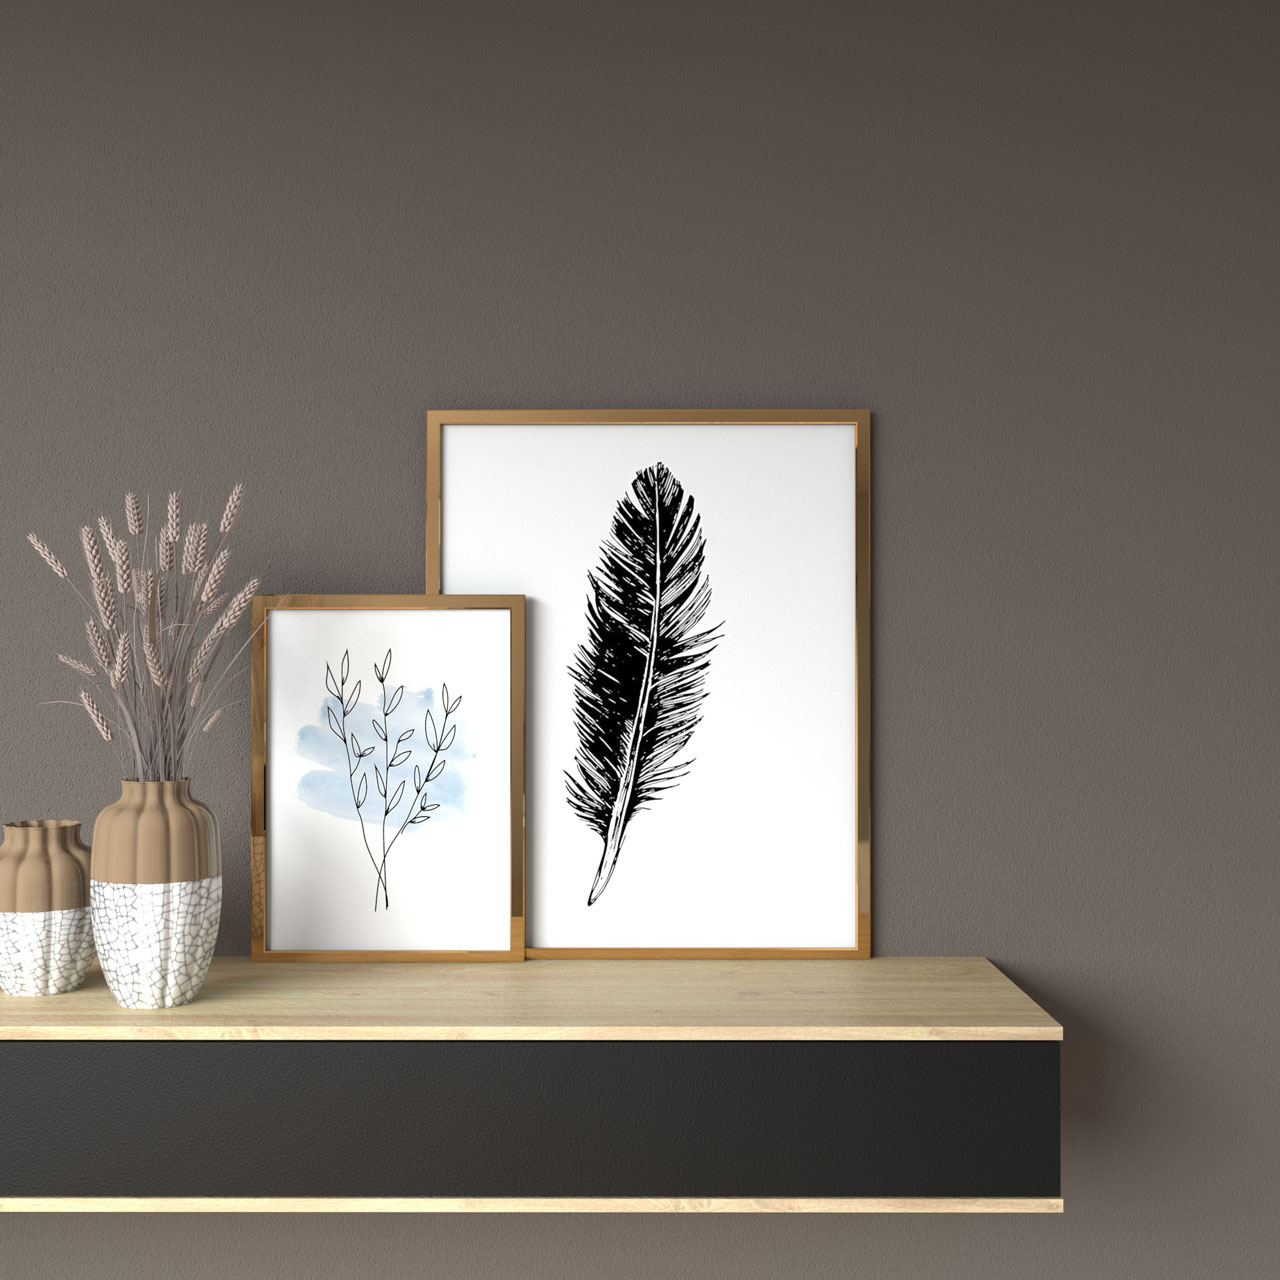 Brown wall with gold framed artwork